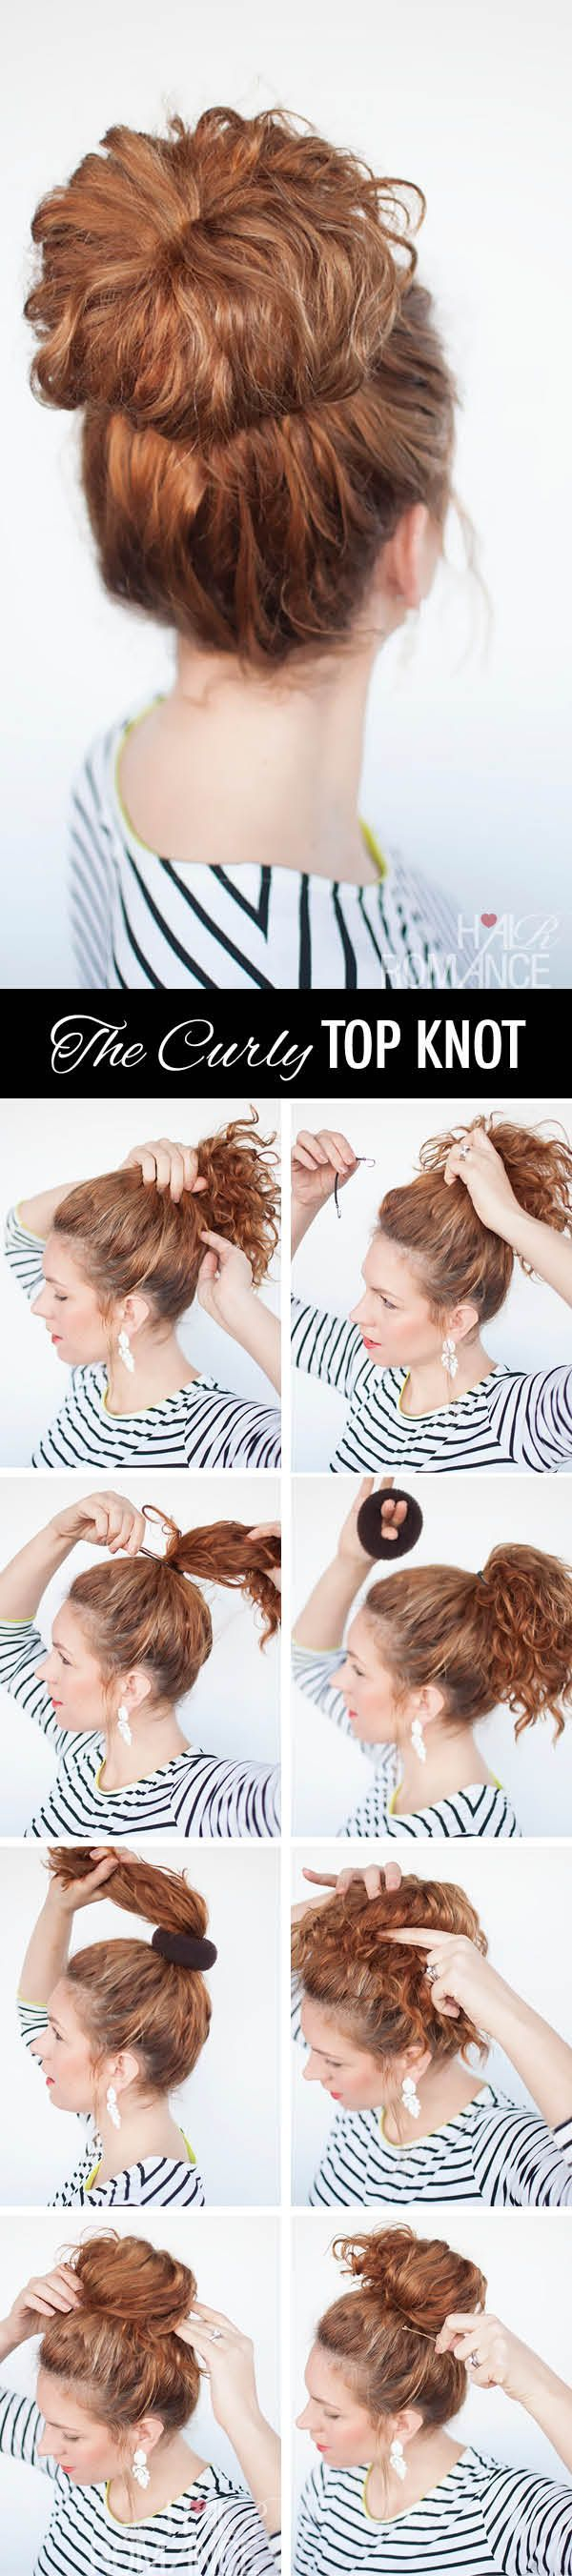 Hair Romance - the curly top knot hairstyle tutorial http://www.jexshop.com/